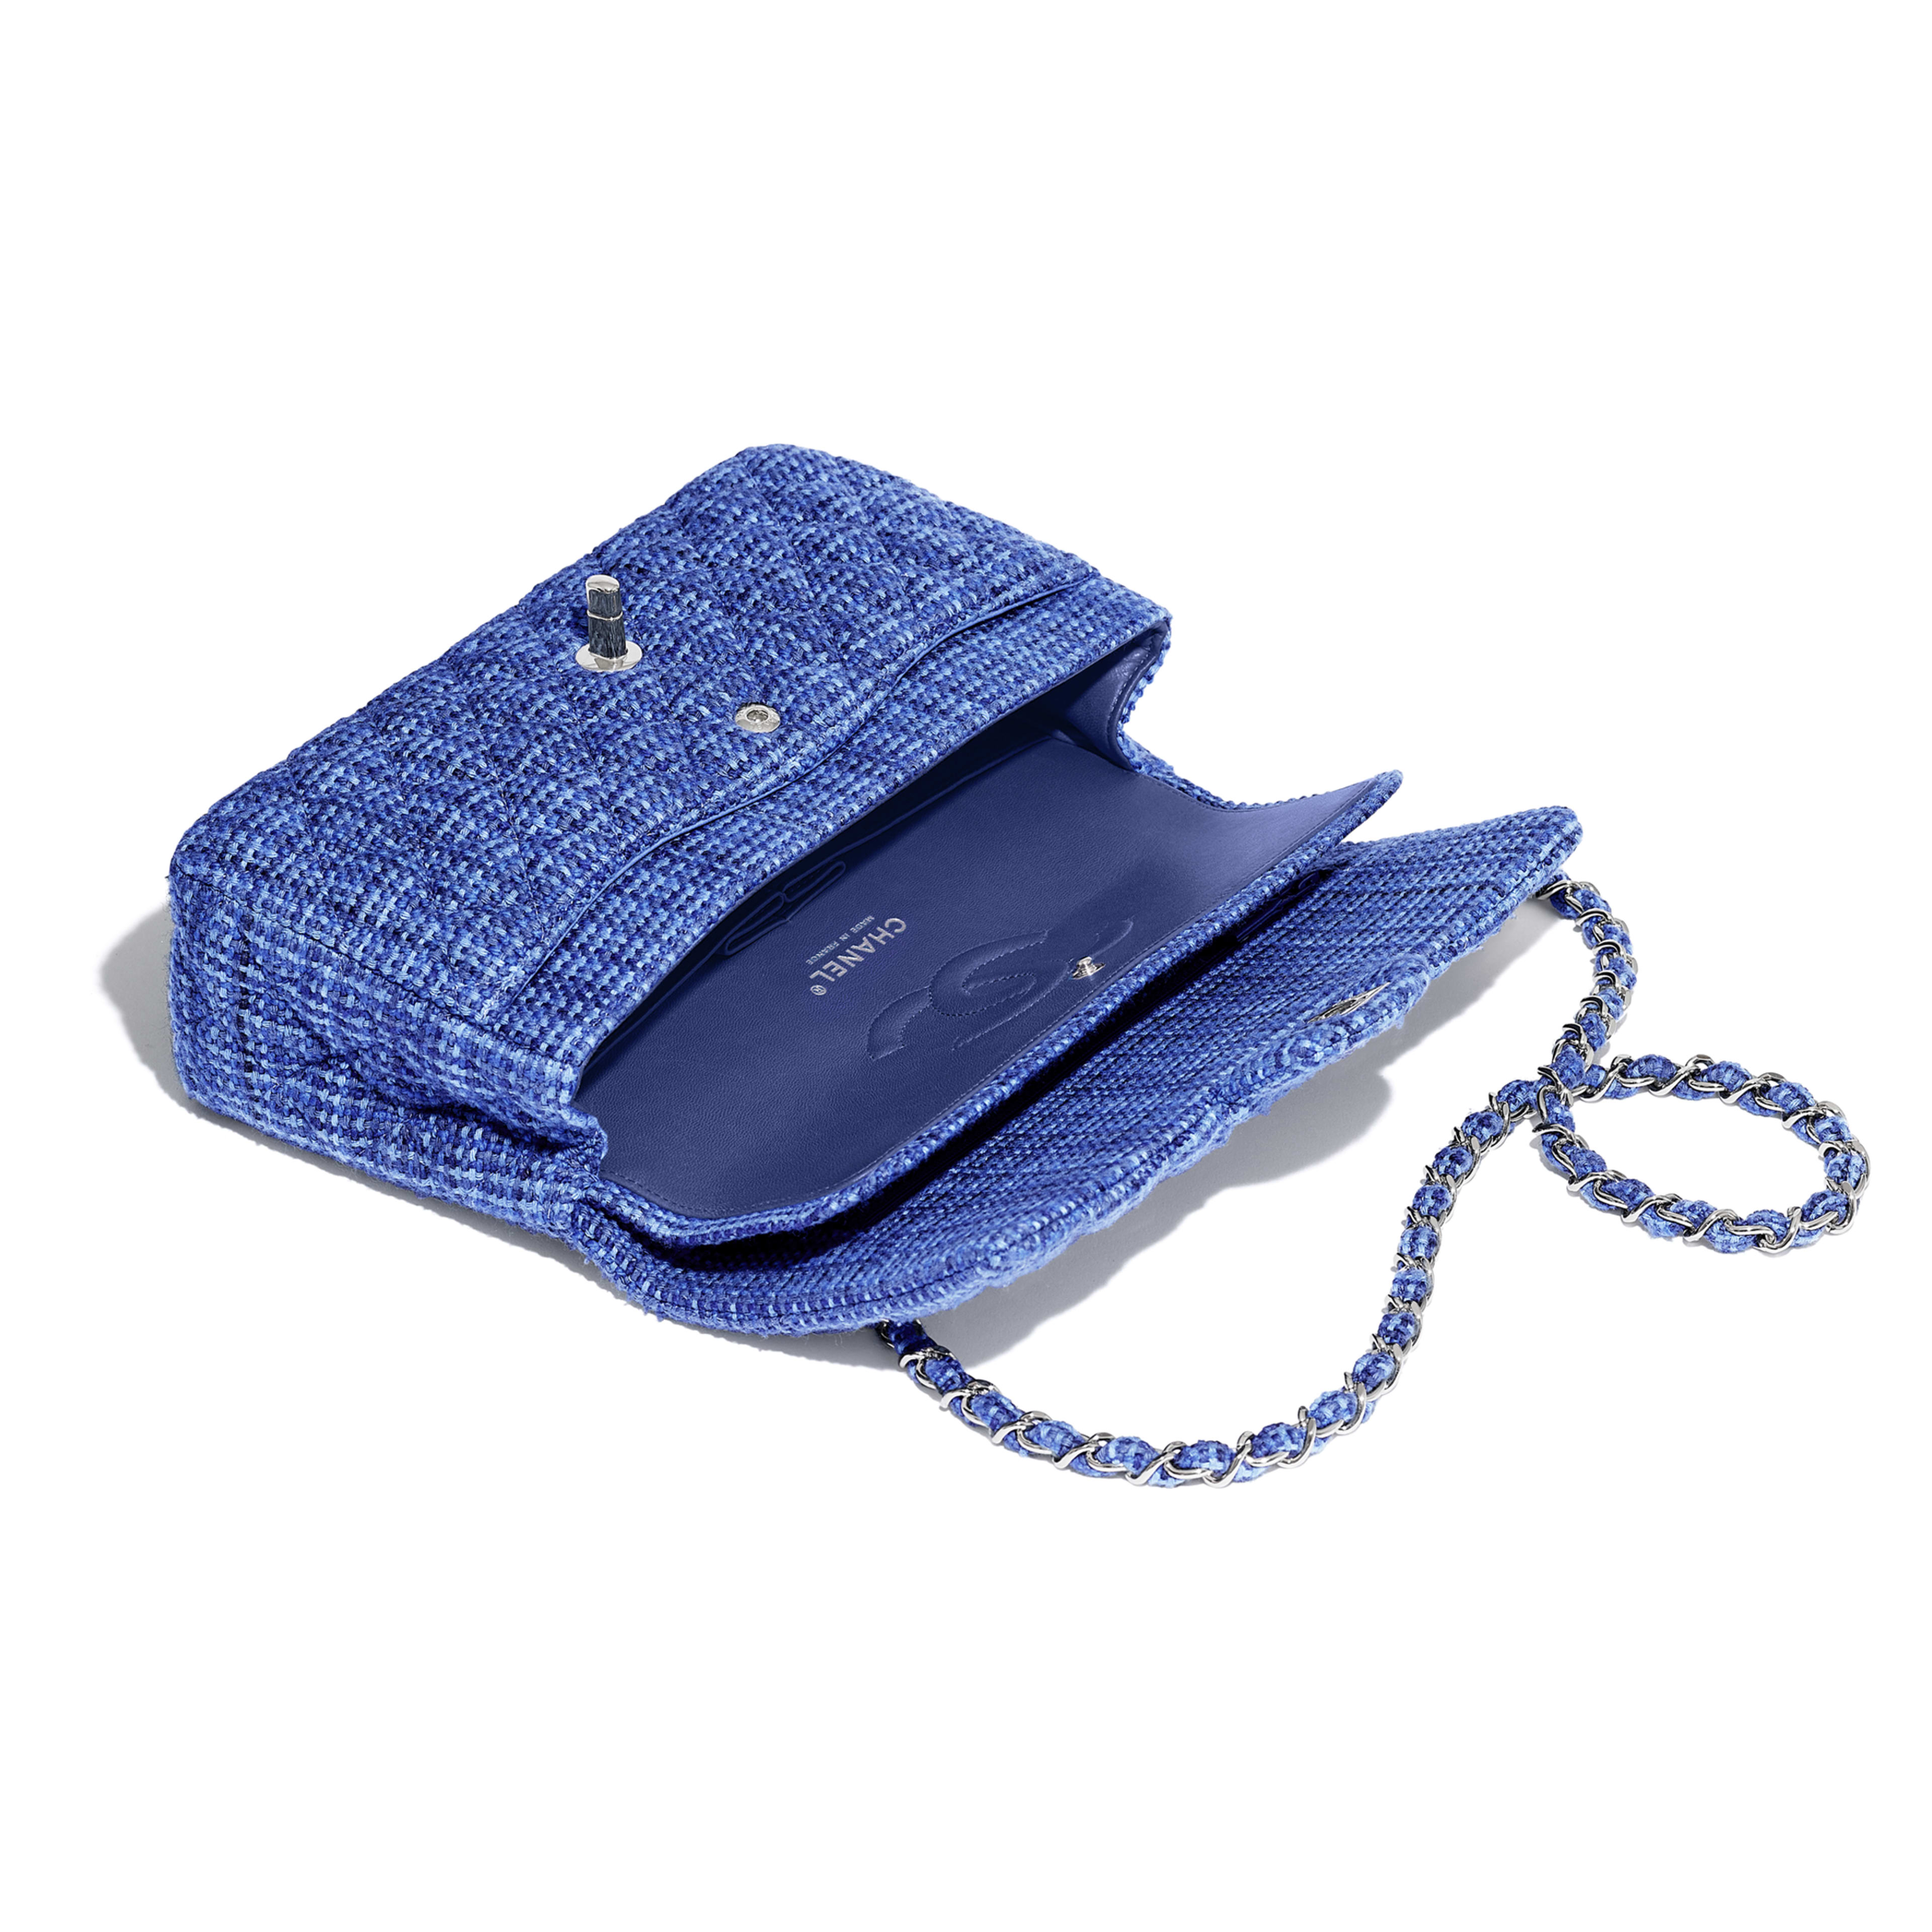 Classic Handbag - Blue - Tweed & Silver-Tone Metal - Other view - see full sized version